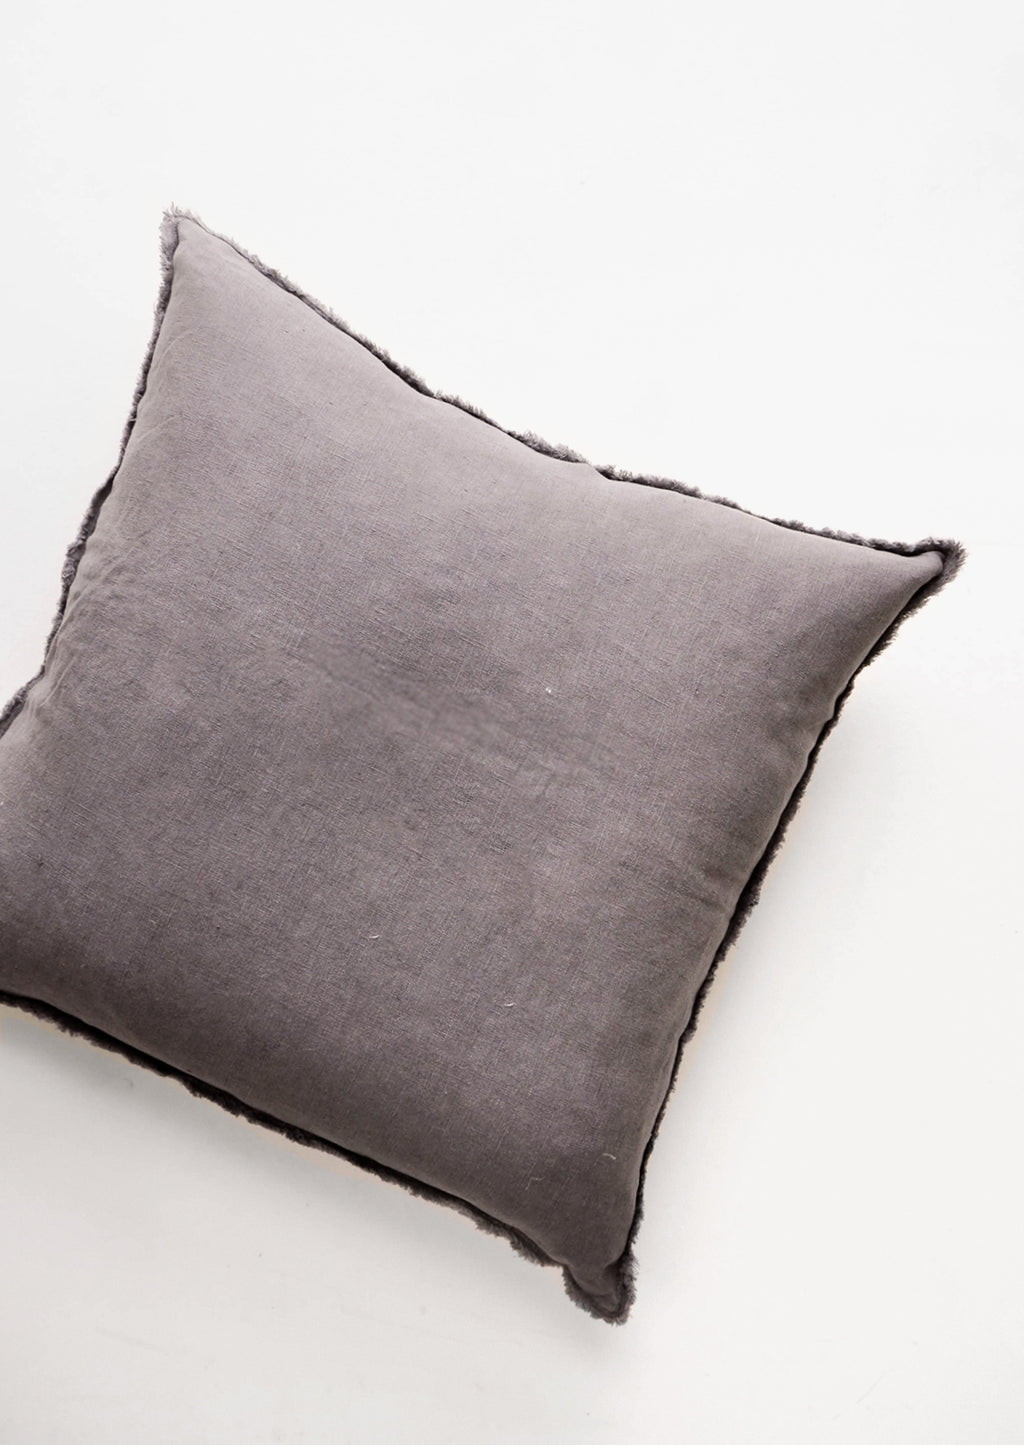 Charcoal: Square Linen Throw Pillow with Frayed Trim in Charcoal - LEIF